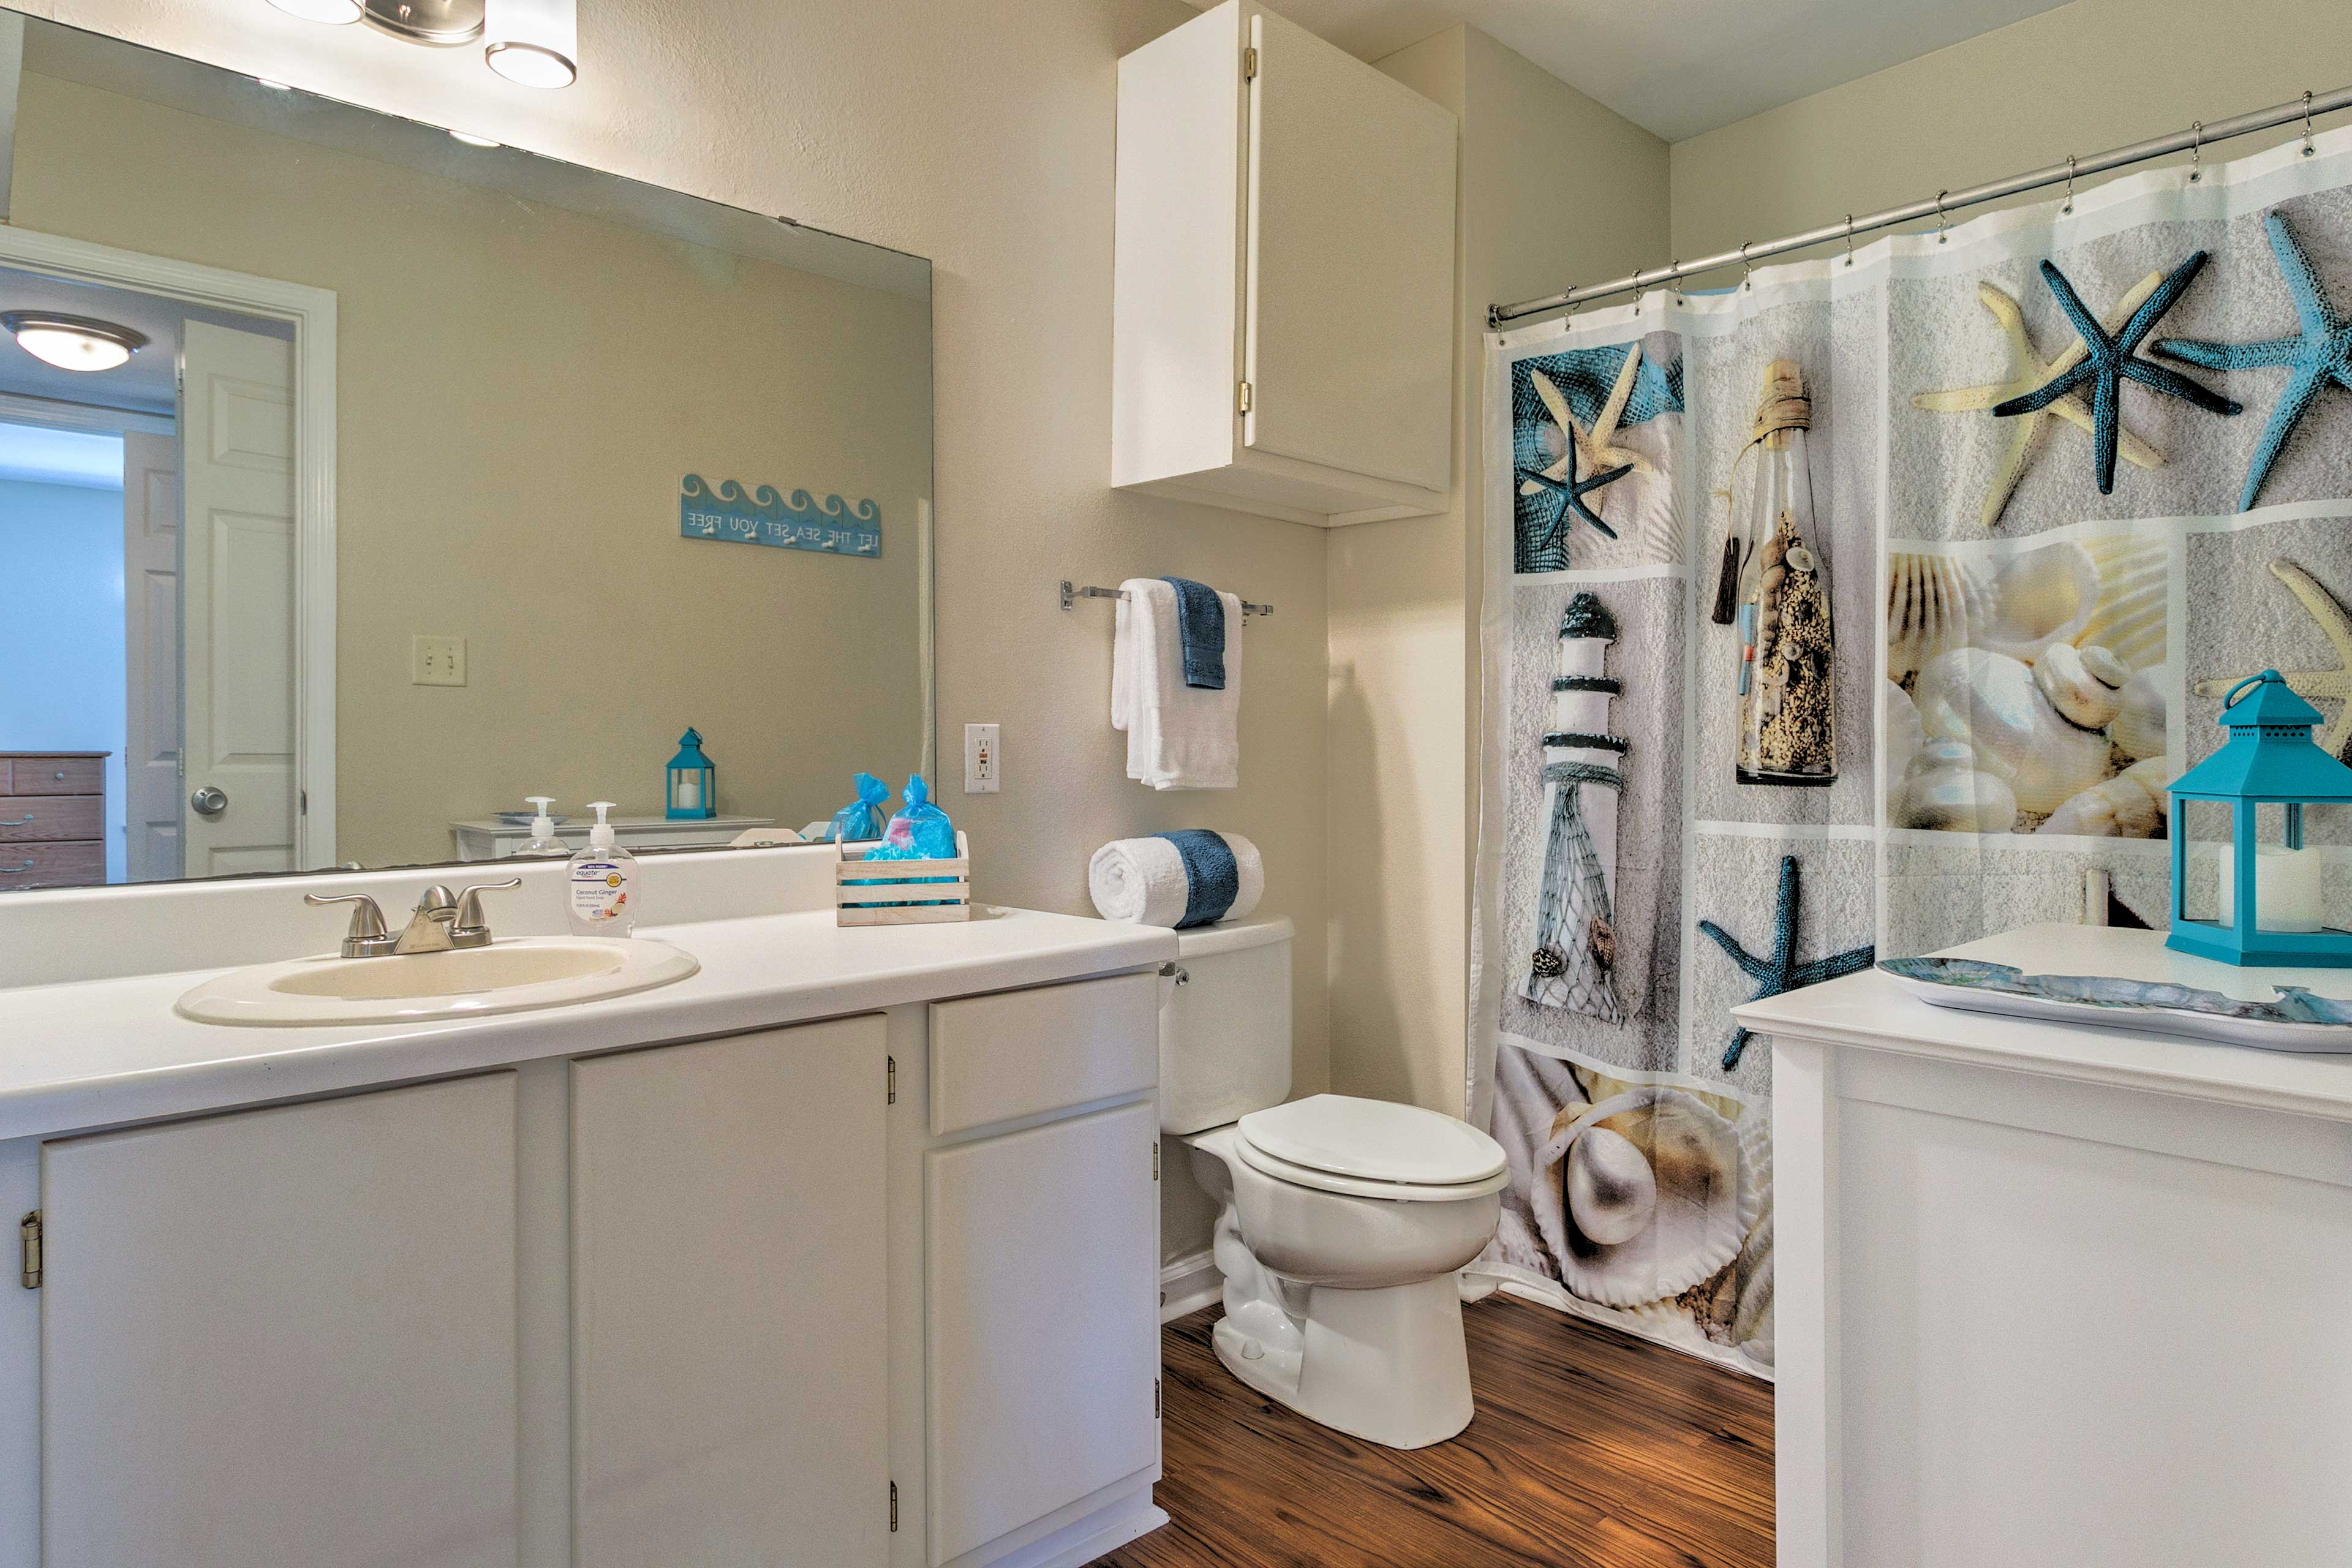 The first bathroom has a single sink, vanity mirror, and a shower/tub combo.